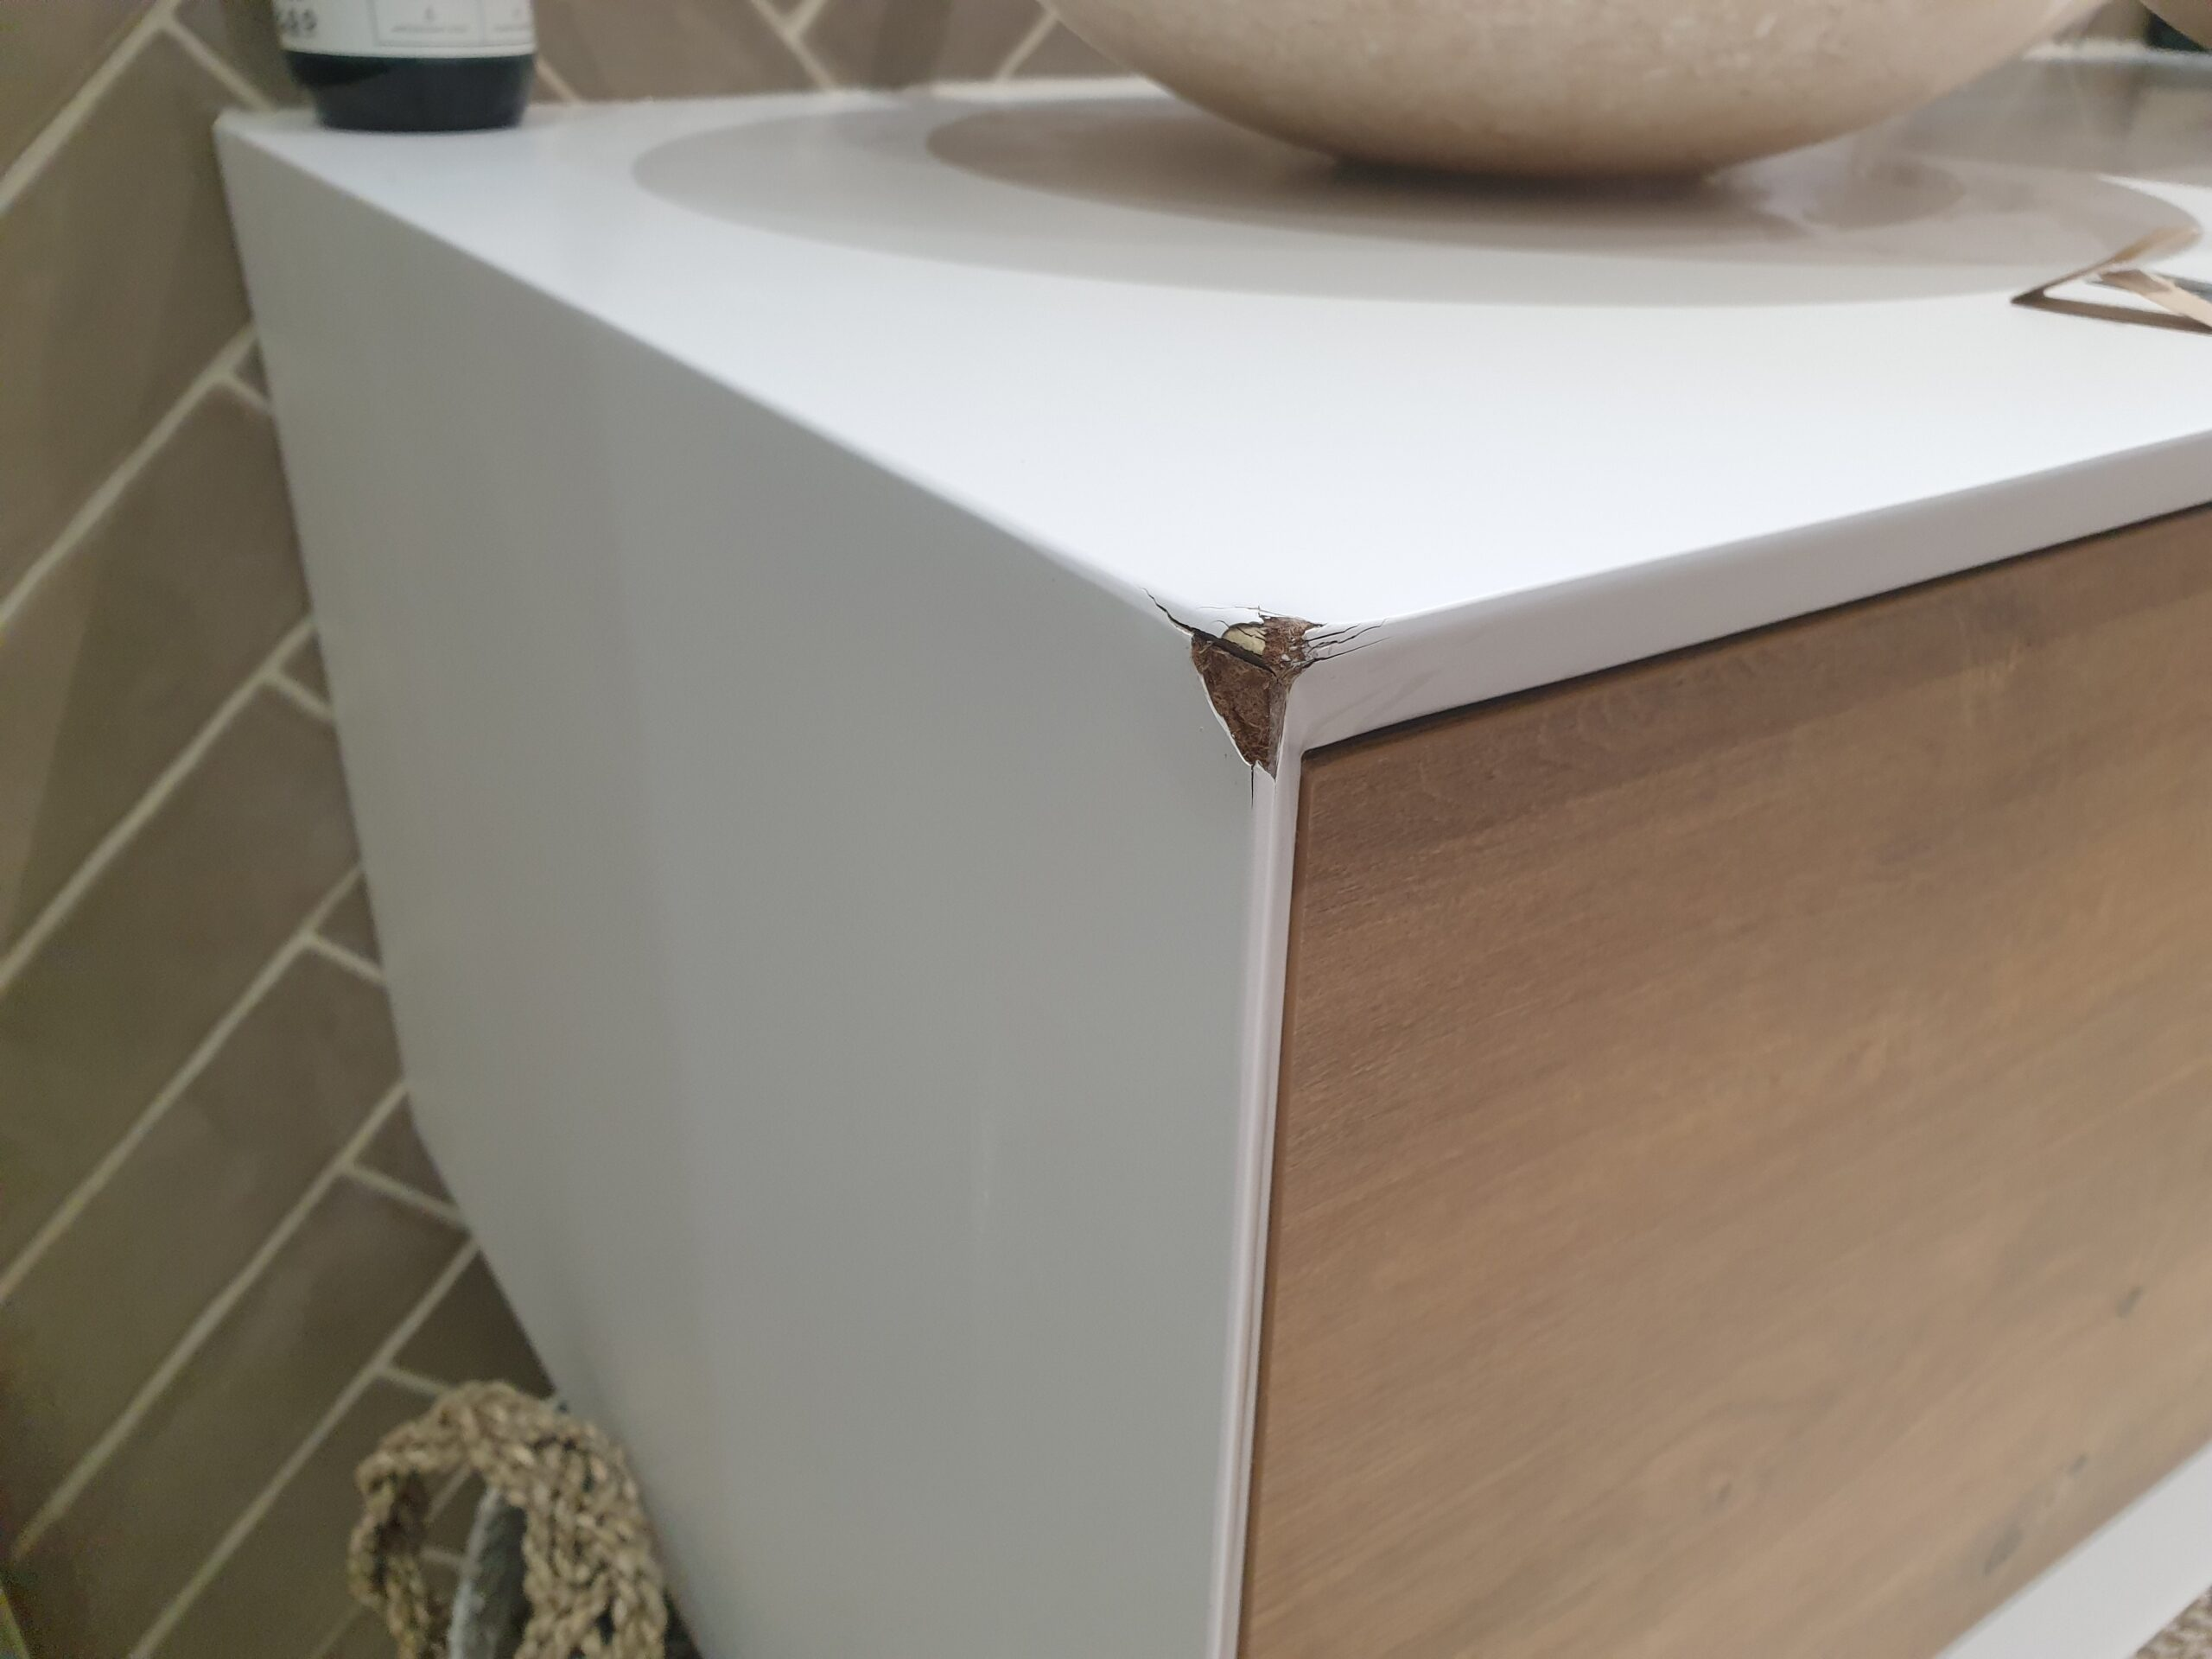 MATT WHITE BATHROOM VANITY UNIT CHIP SCRATCH DENT WATER DAMAGE REPAIR BEFORE